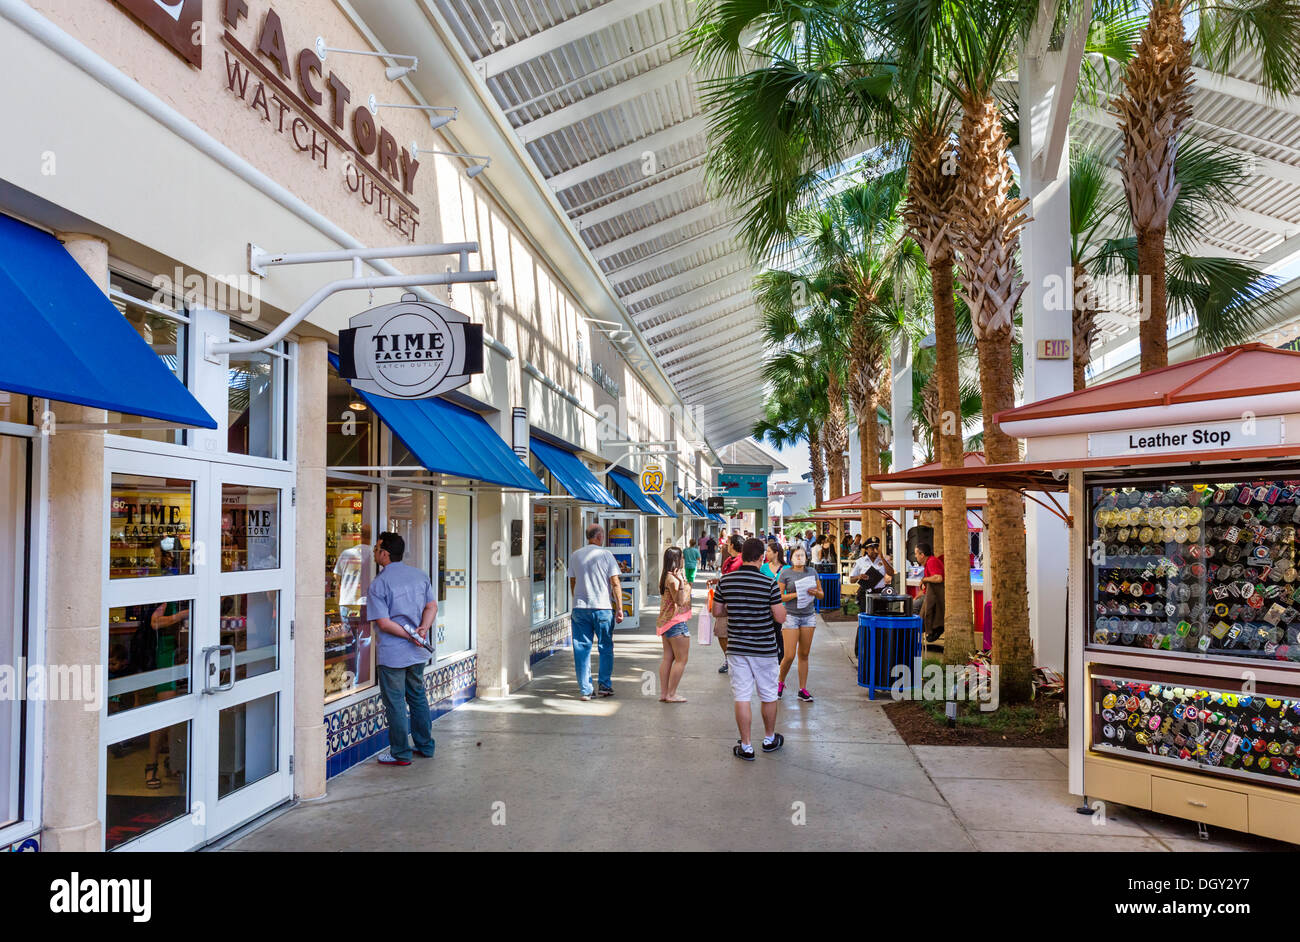 Best Orlando Shopping: See reviews and photos of shops, malls & outlets in Orlando, Florida on TripAdvisor.